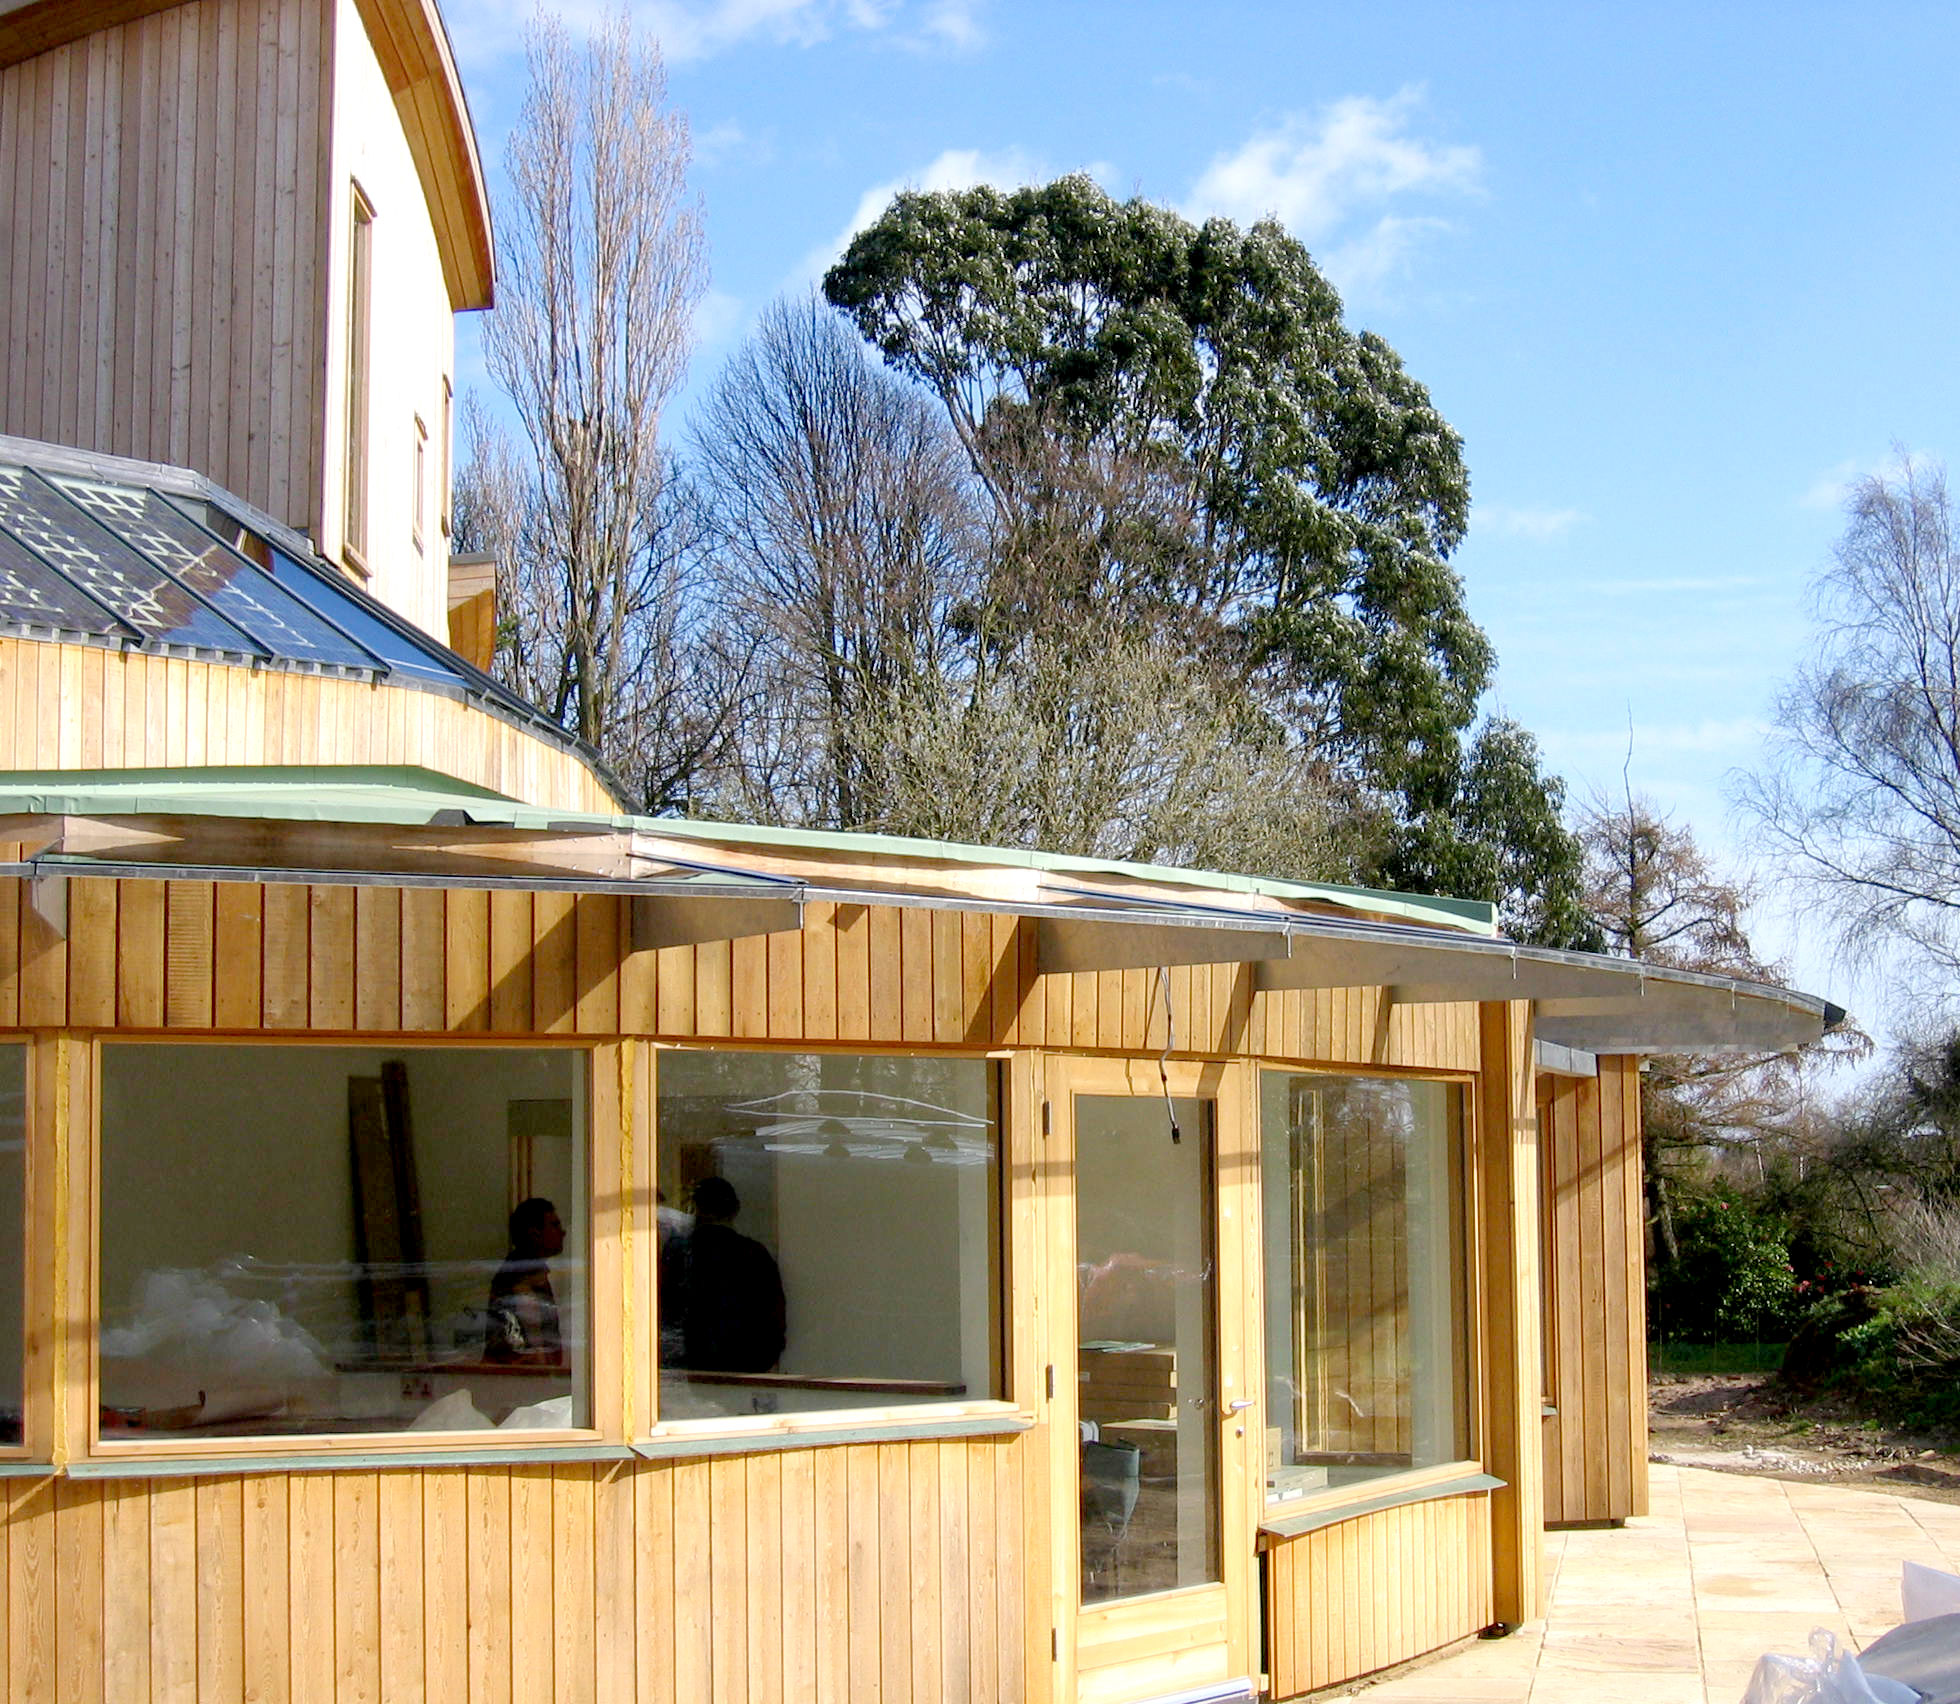 Robin's Hill replacement dwelling in aldeburgh suffolk modece architects eco house curved